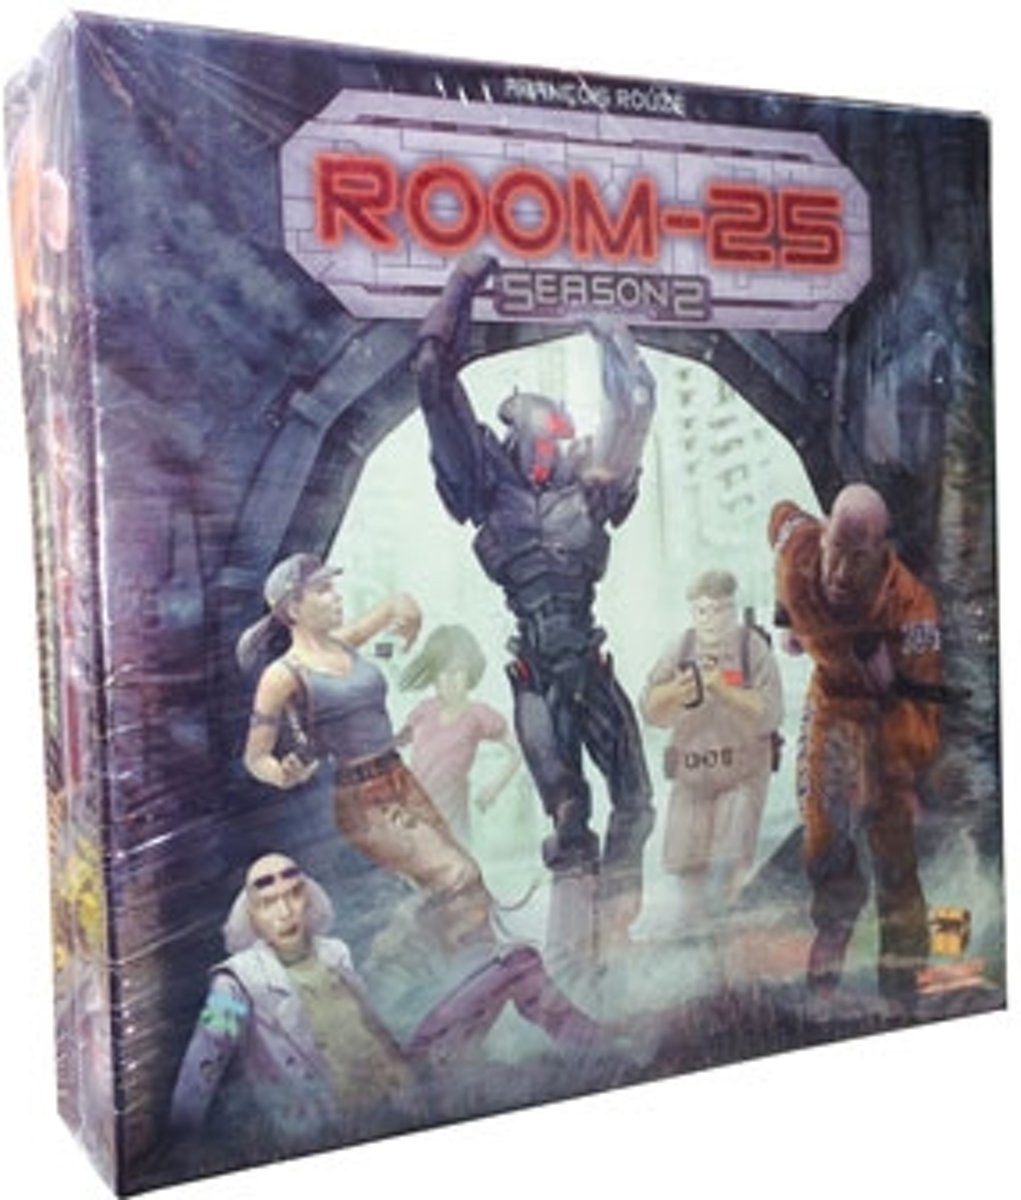 Room 25 - uitbr. - Season 2